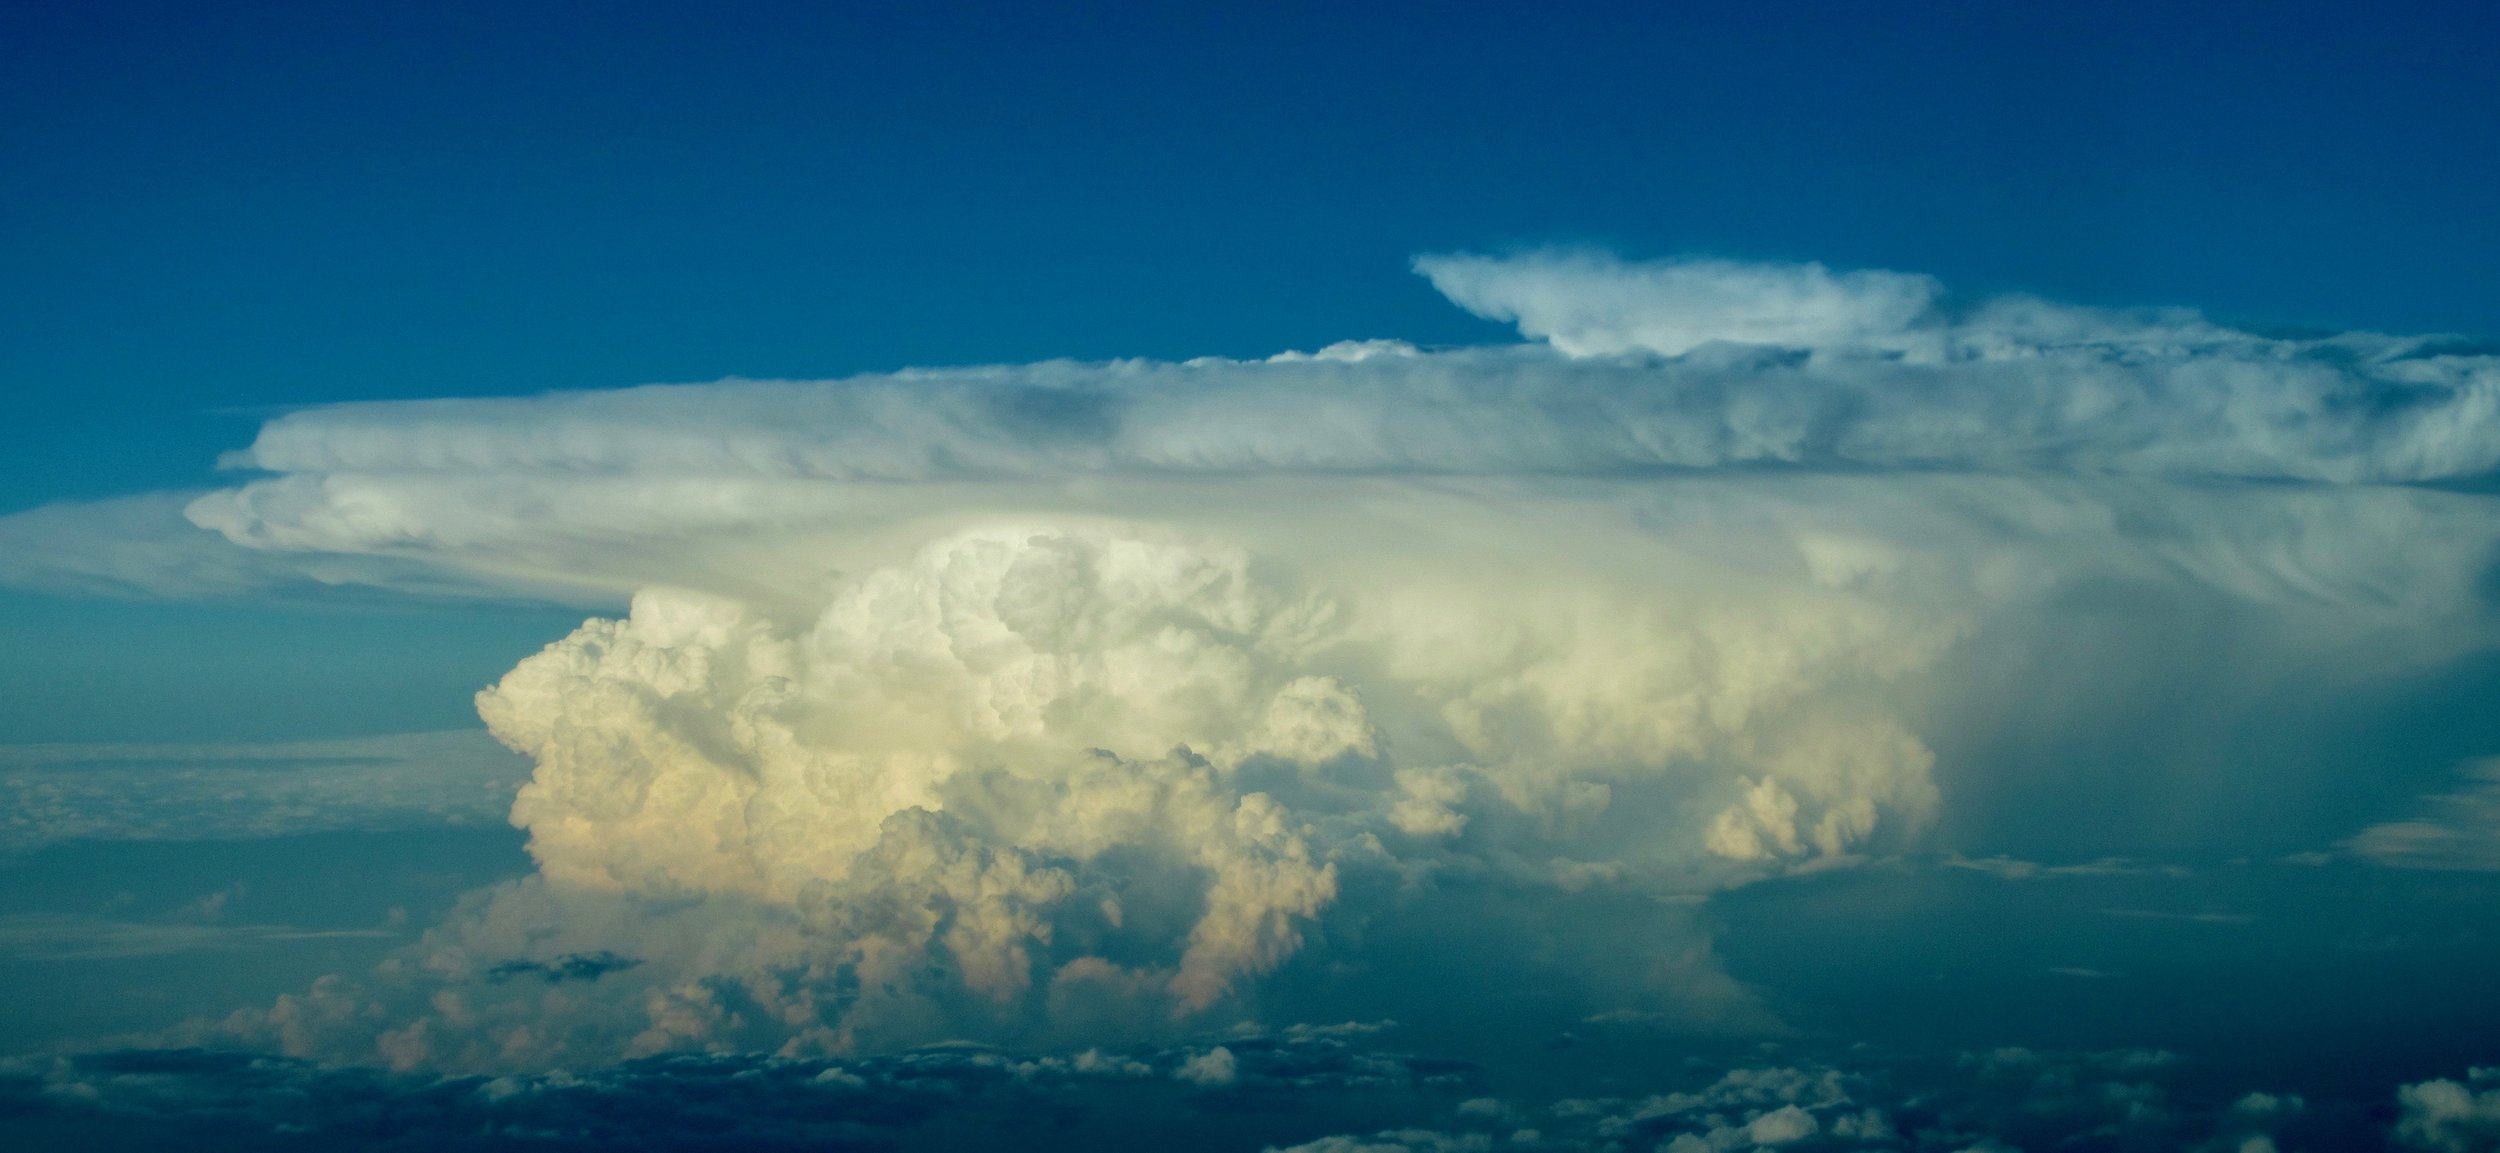 "An anvil and a fully developed thunderstorm. This guy hit the tropopause hence the blacksmith looking anvil. I called this inversion or isothermal layer a tropopause inversion. I took a pic of this ""bad boy"" over Montana. It flirted to FL 460 or so, well above an airliner's maximum height."